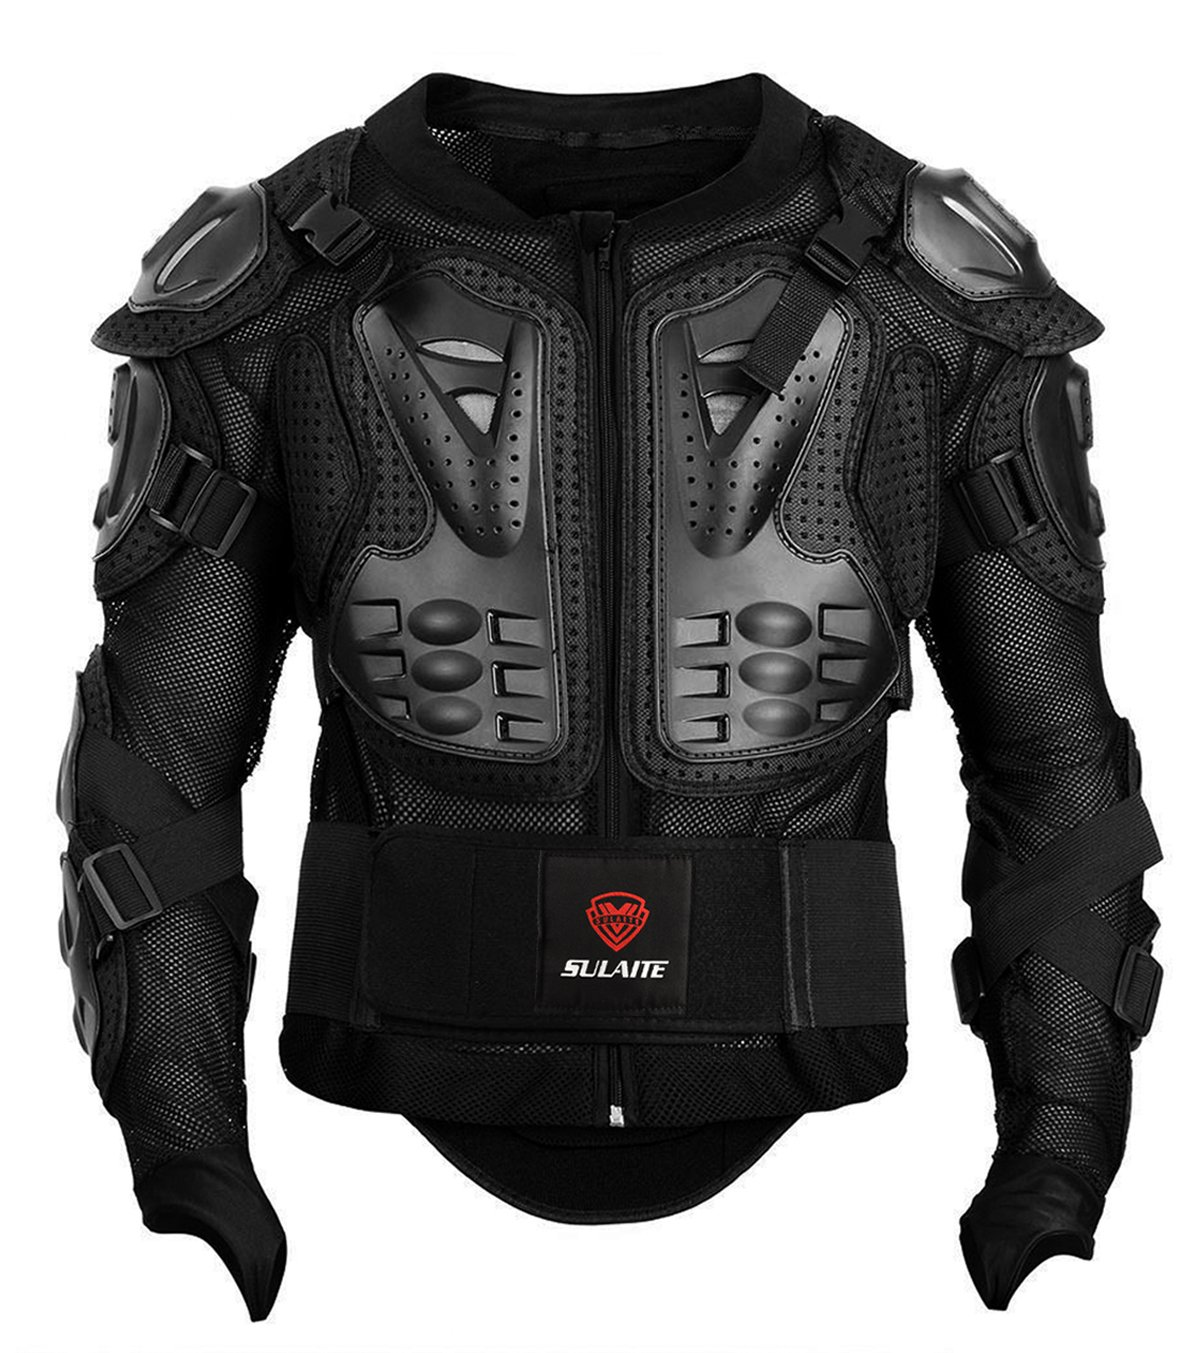 GuTe Motorcycle Protective Jacket,Sport Motocross MTB Racing Full Body Armor Protector for Men (2XL) by Gute